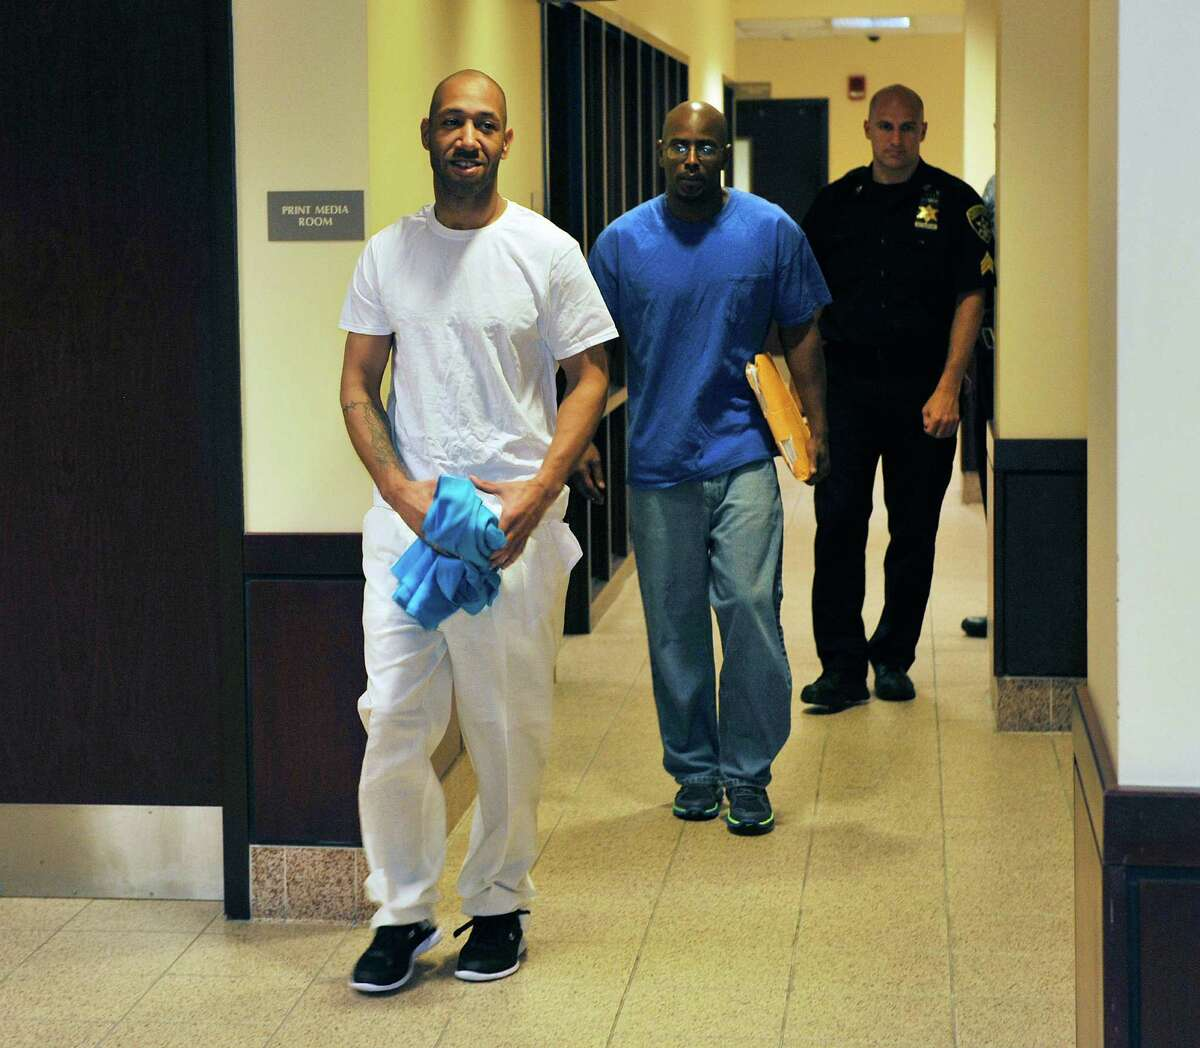 Lavell Jones, left, and Carl Dukes walk out of the Albany County Judicial Center on Thursday, July 7, 2016, in Albany, N.Y. Jones and Dukes, who was imprisoned for the 1997 killing of Erik Mitchell, a University at Albany student, were exonerated of the crime. Another man has been implicated in the killing. (Paul Buckowski / Times Union)